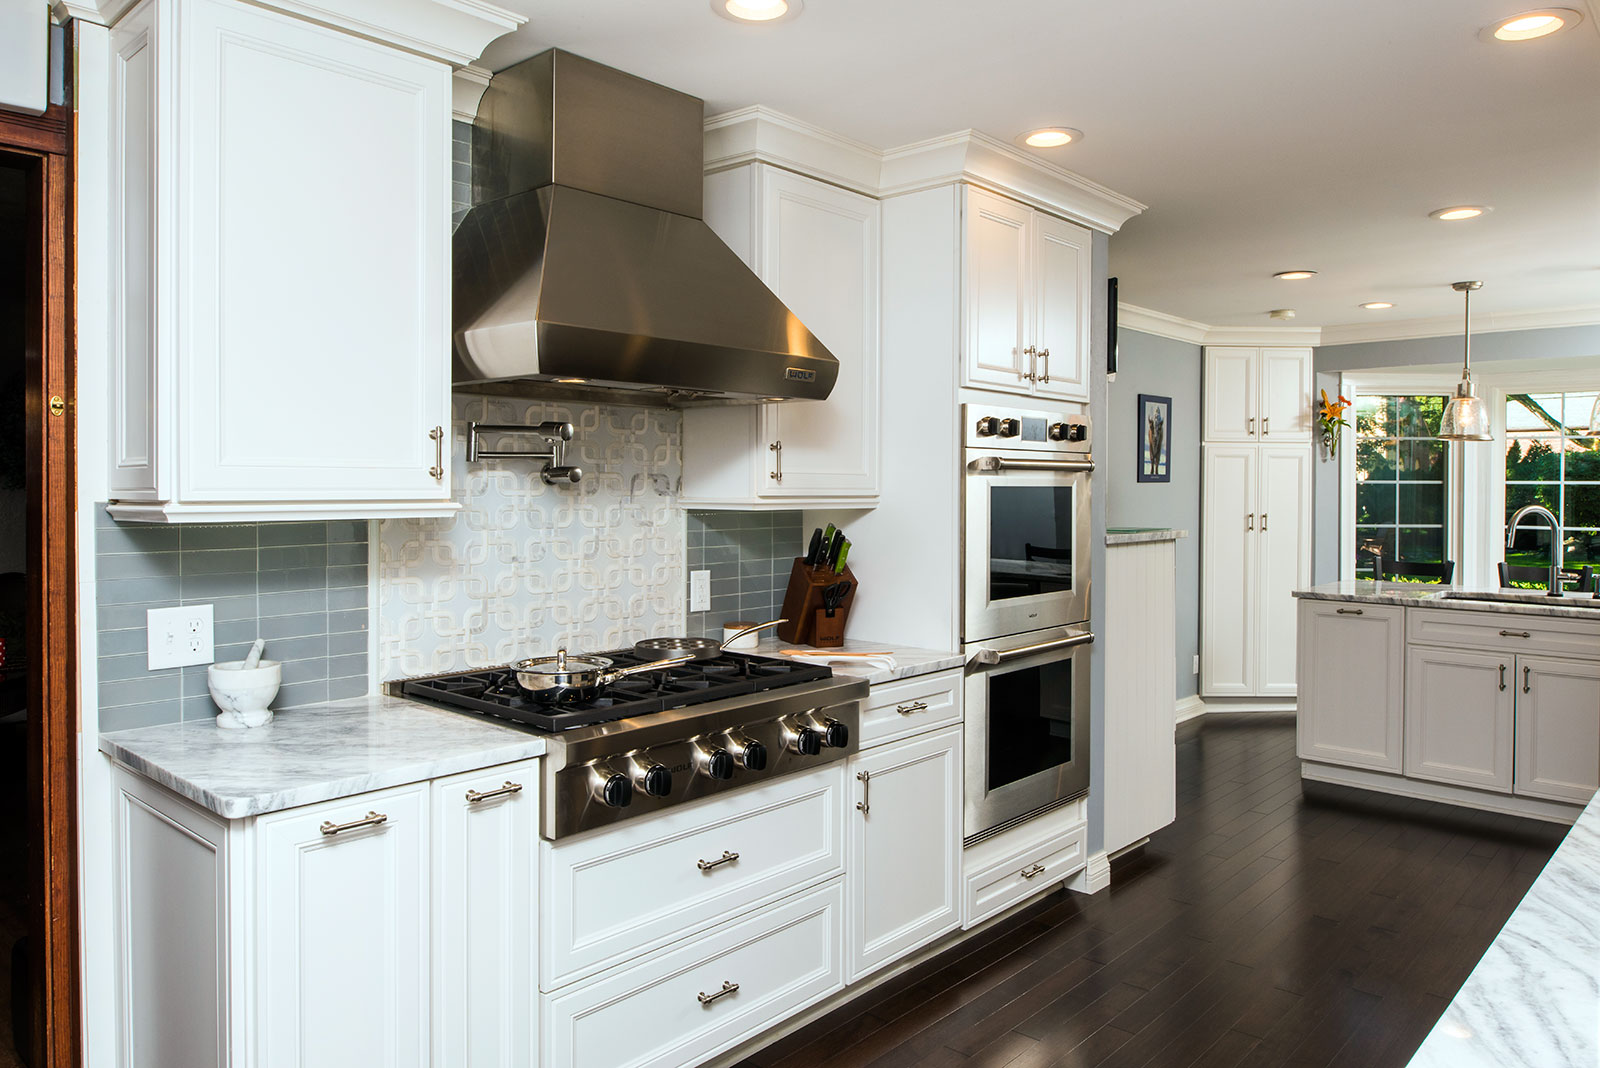 Sleek Professional Kitchen with a Modern Flare